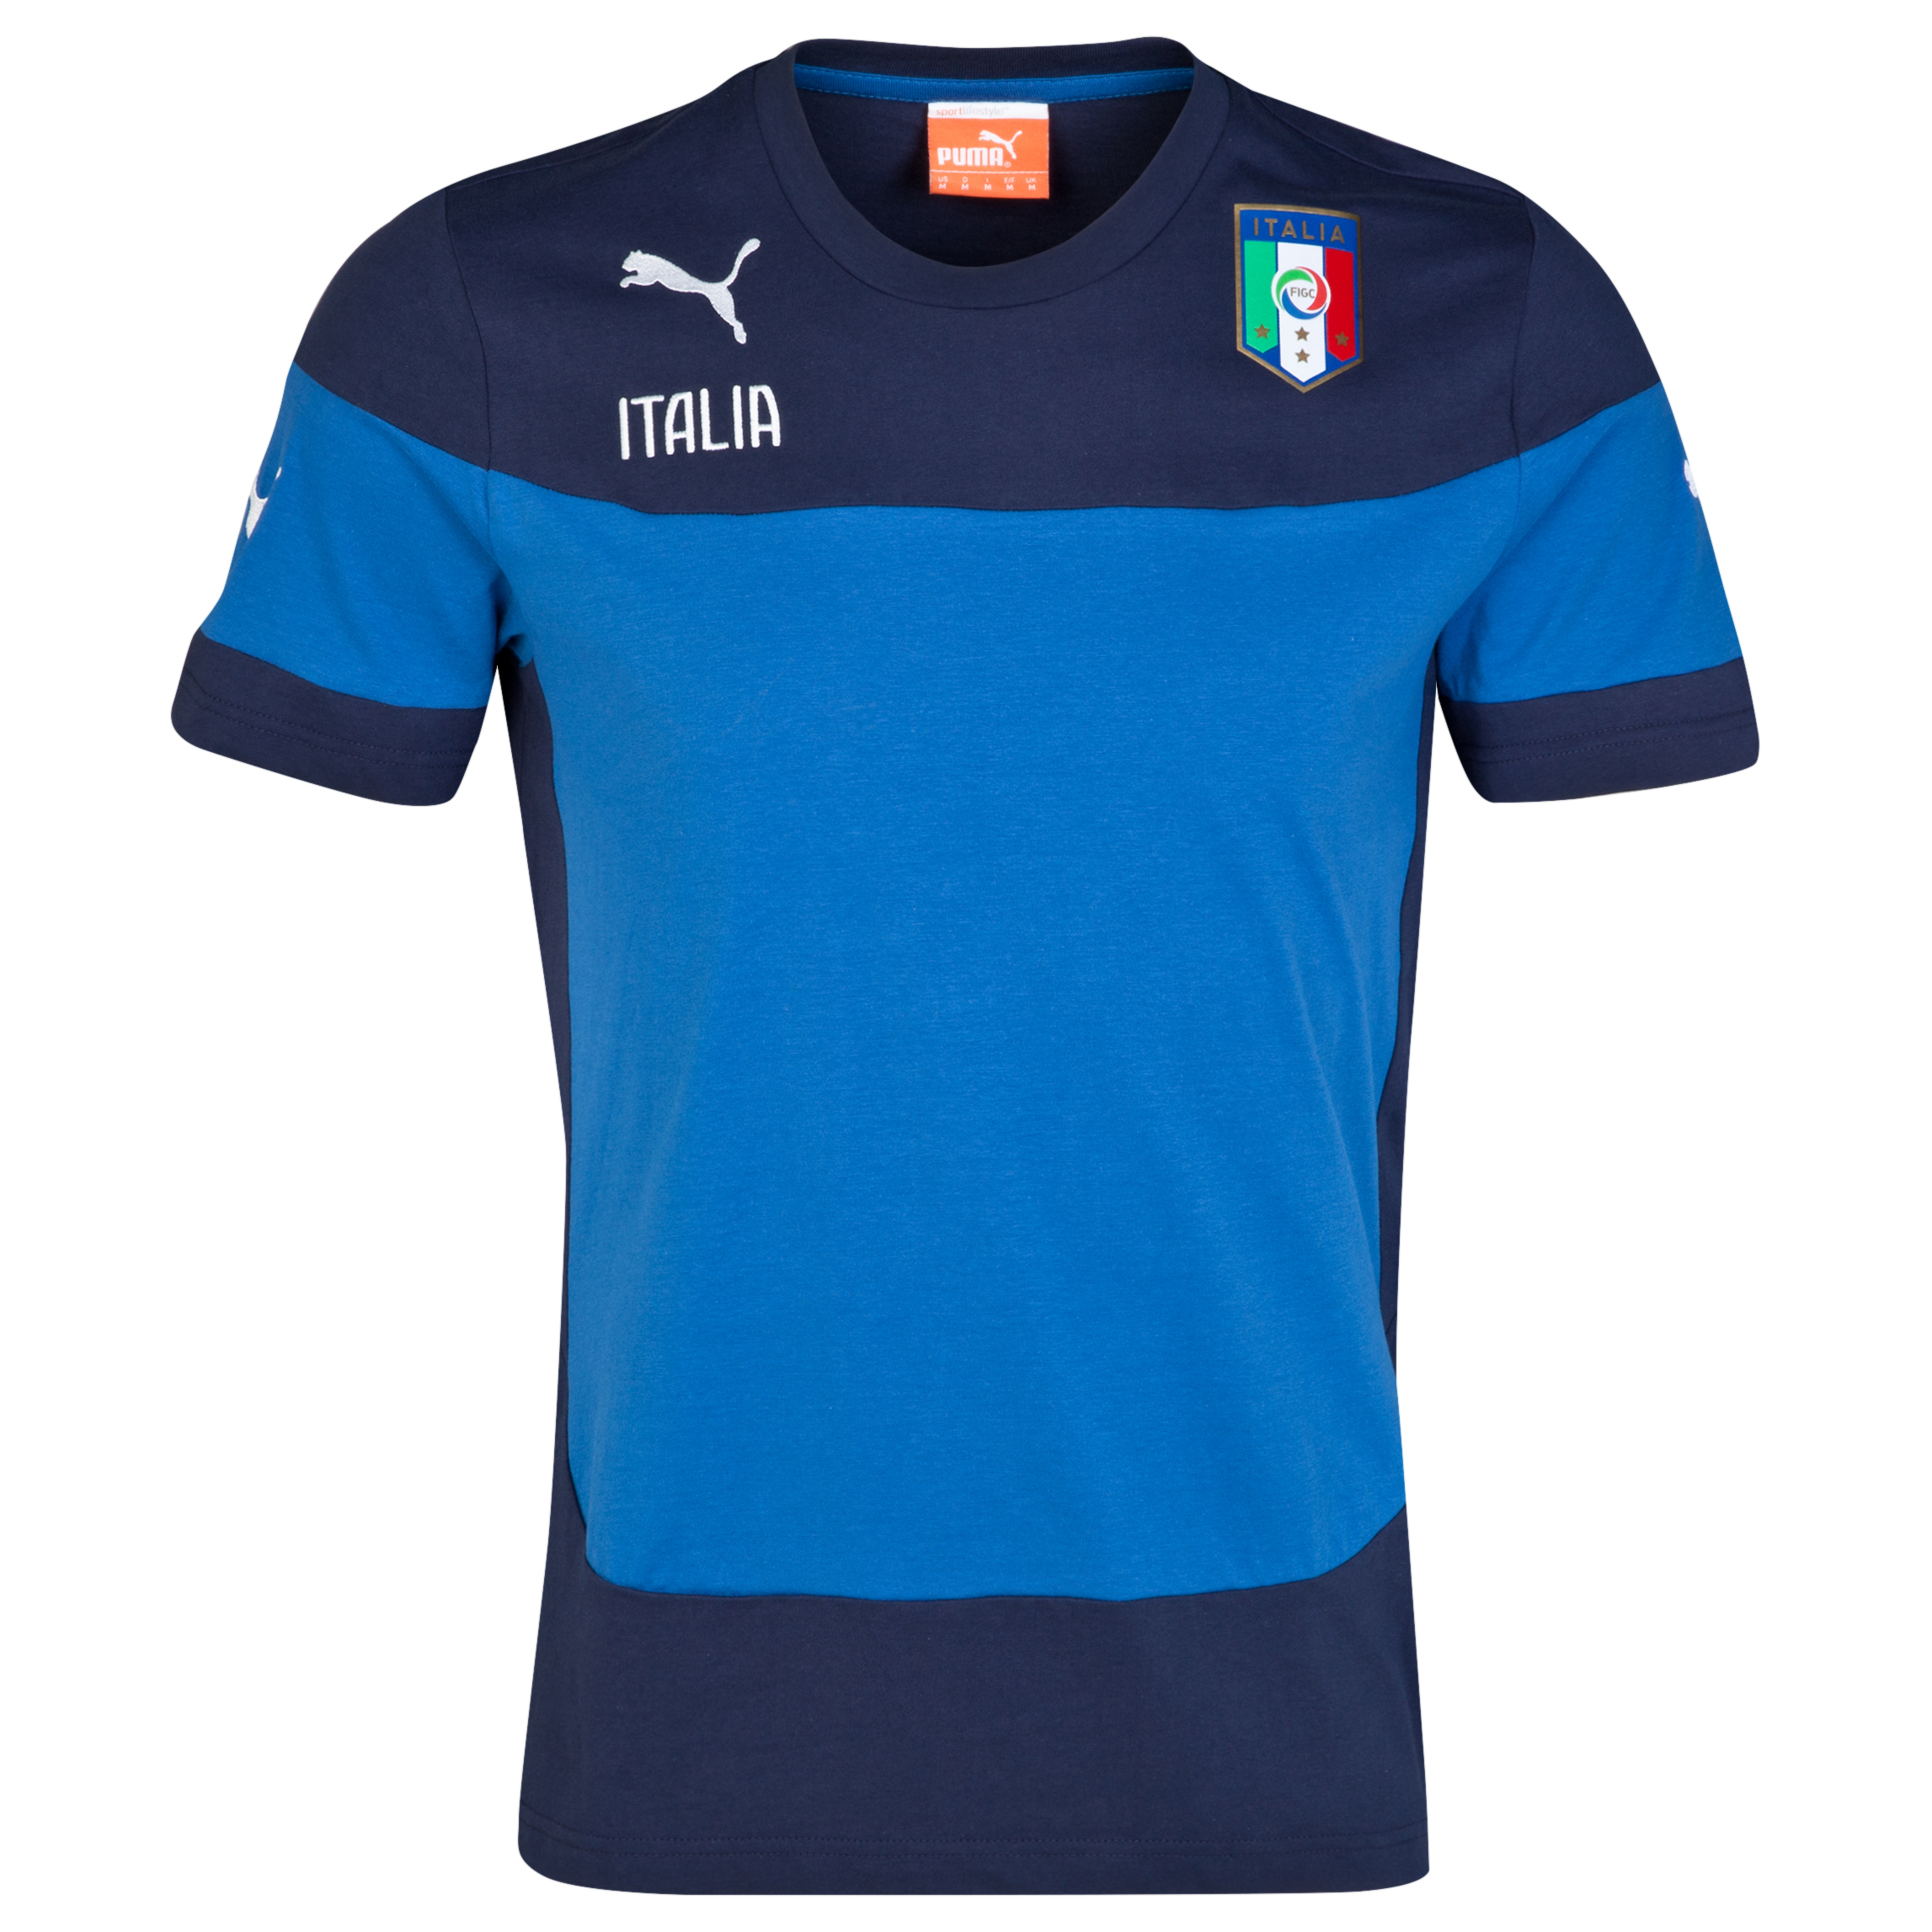 Italy Leisure T-Shirt - Blue